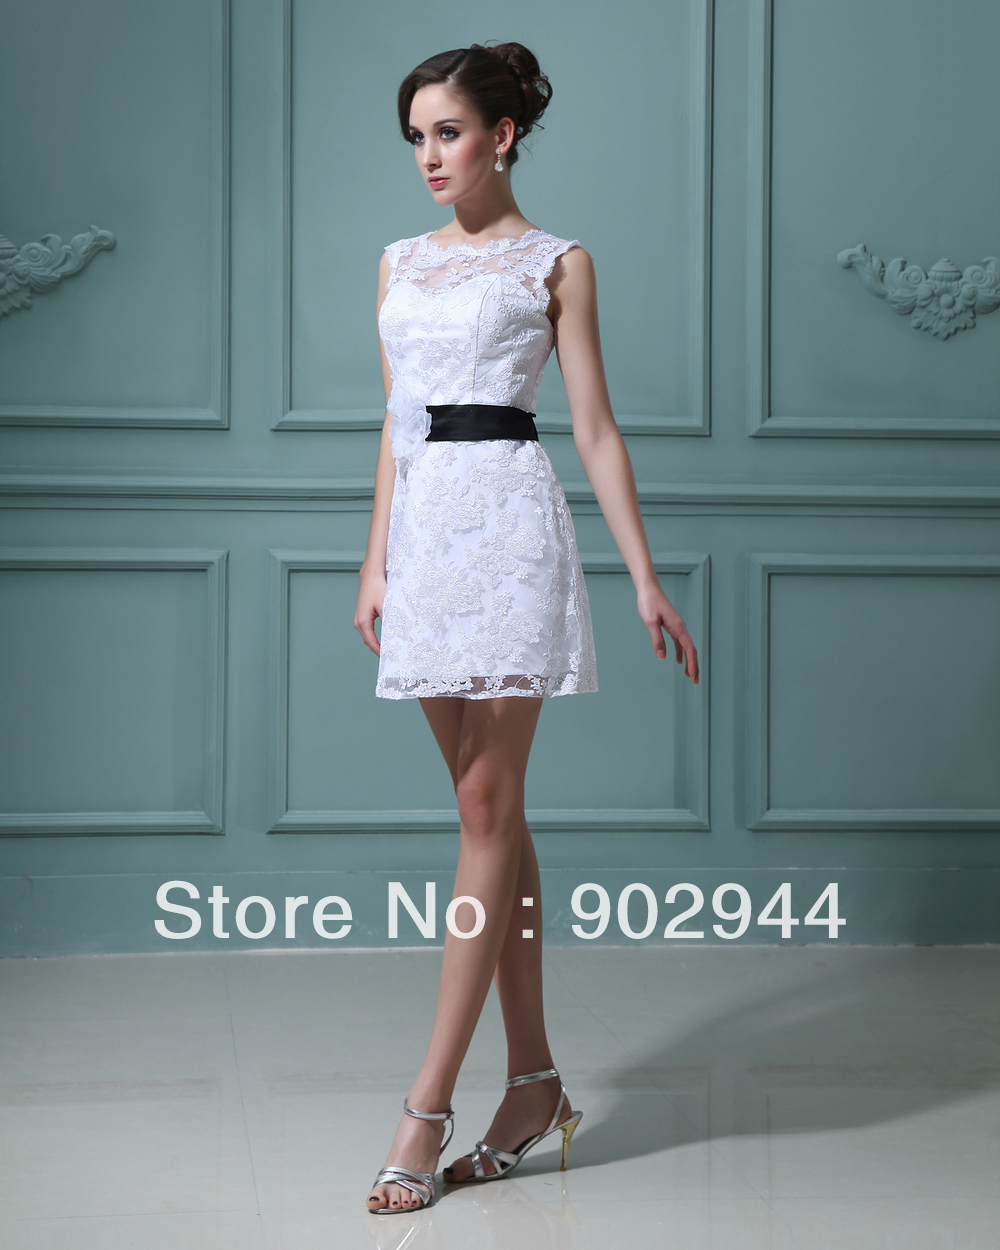 casual lace wedding dresses white casual wedding dresses Casual Lace Wedding Dresses 92